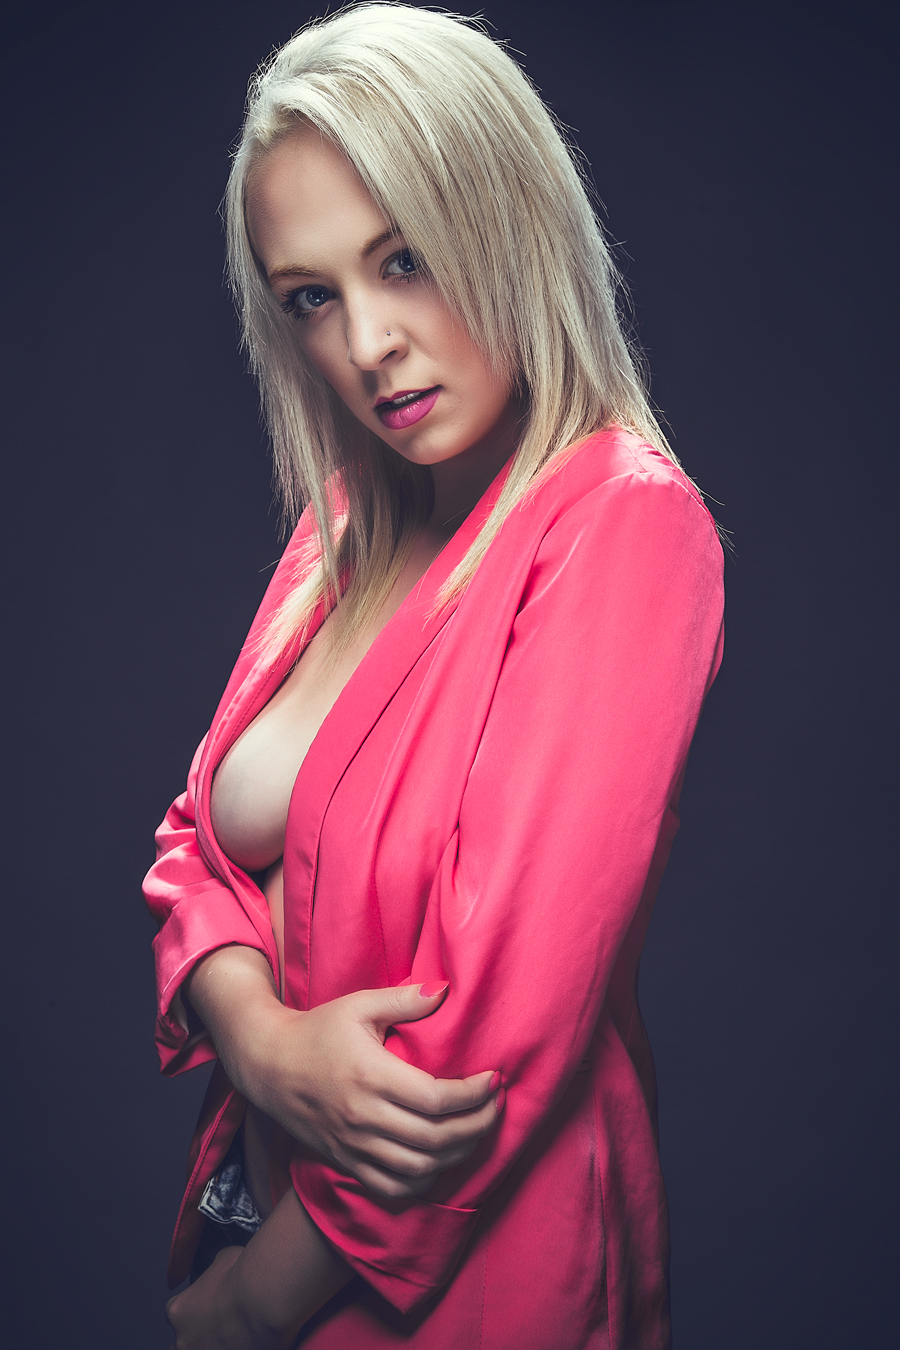 Just Be / Photography by Darryl J Dennis, Model Daisy Bright, Post processing by Darryl J Dennis, Taken at Saracen House Studio / Uploaded 4th September 2015 @ 10:53 PM